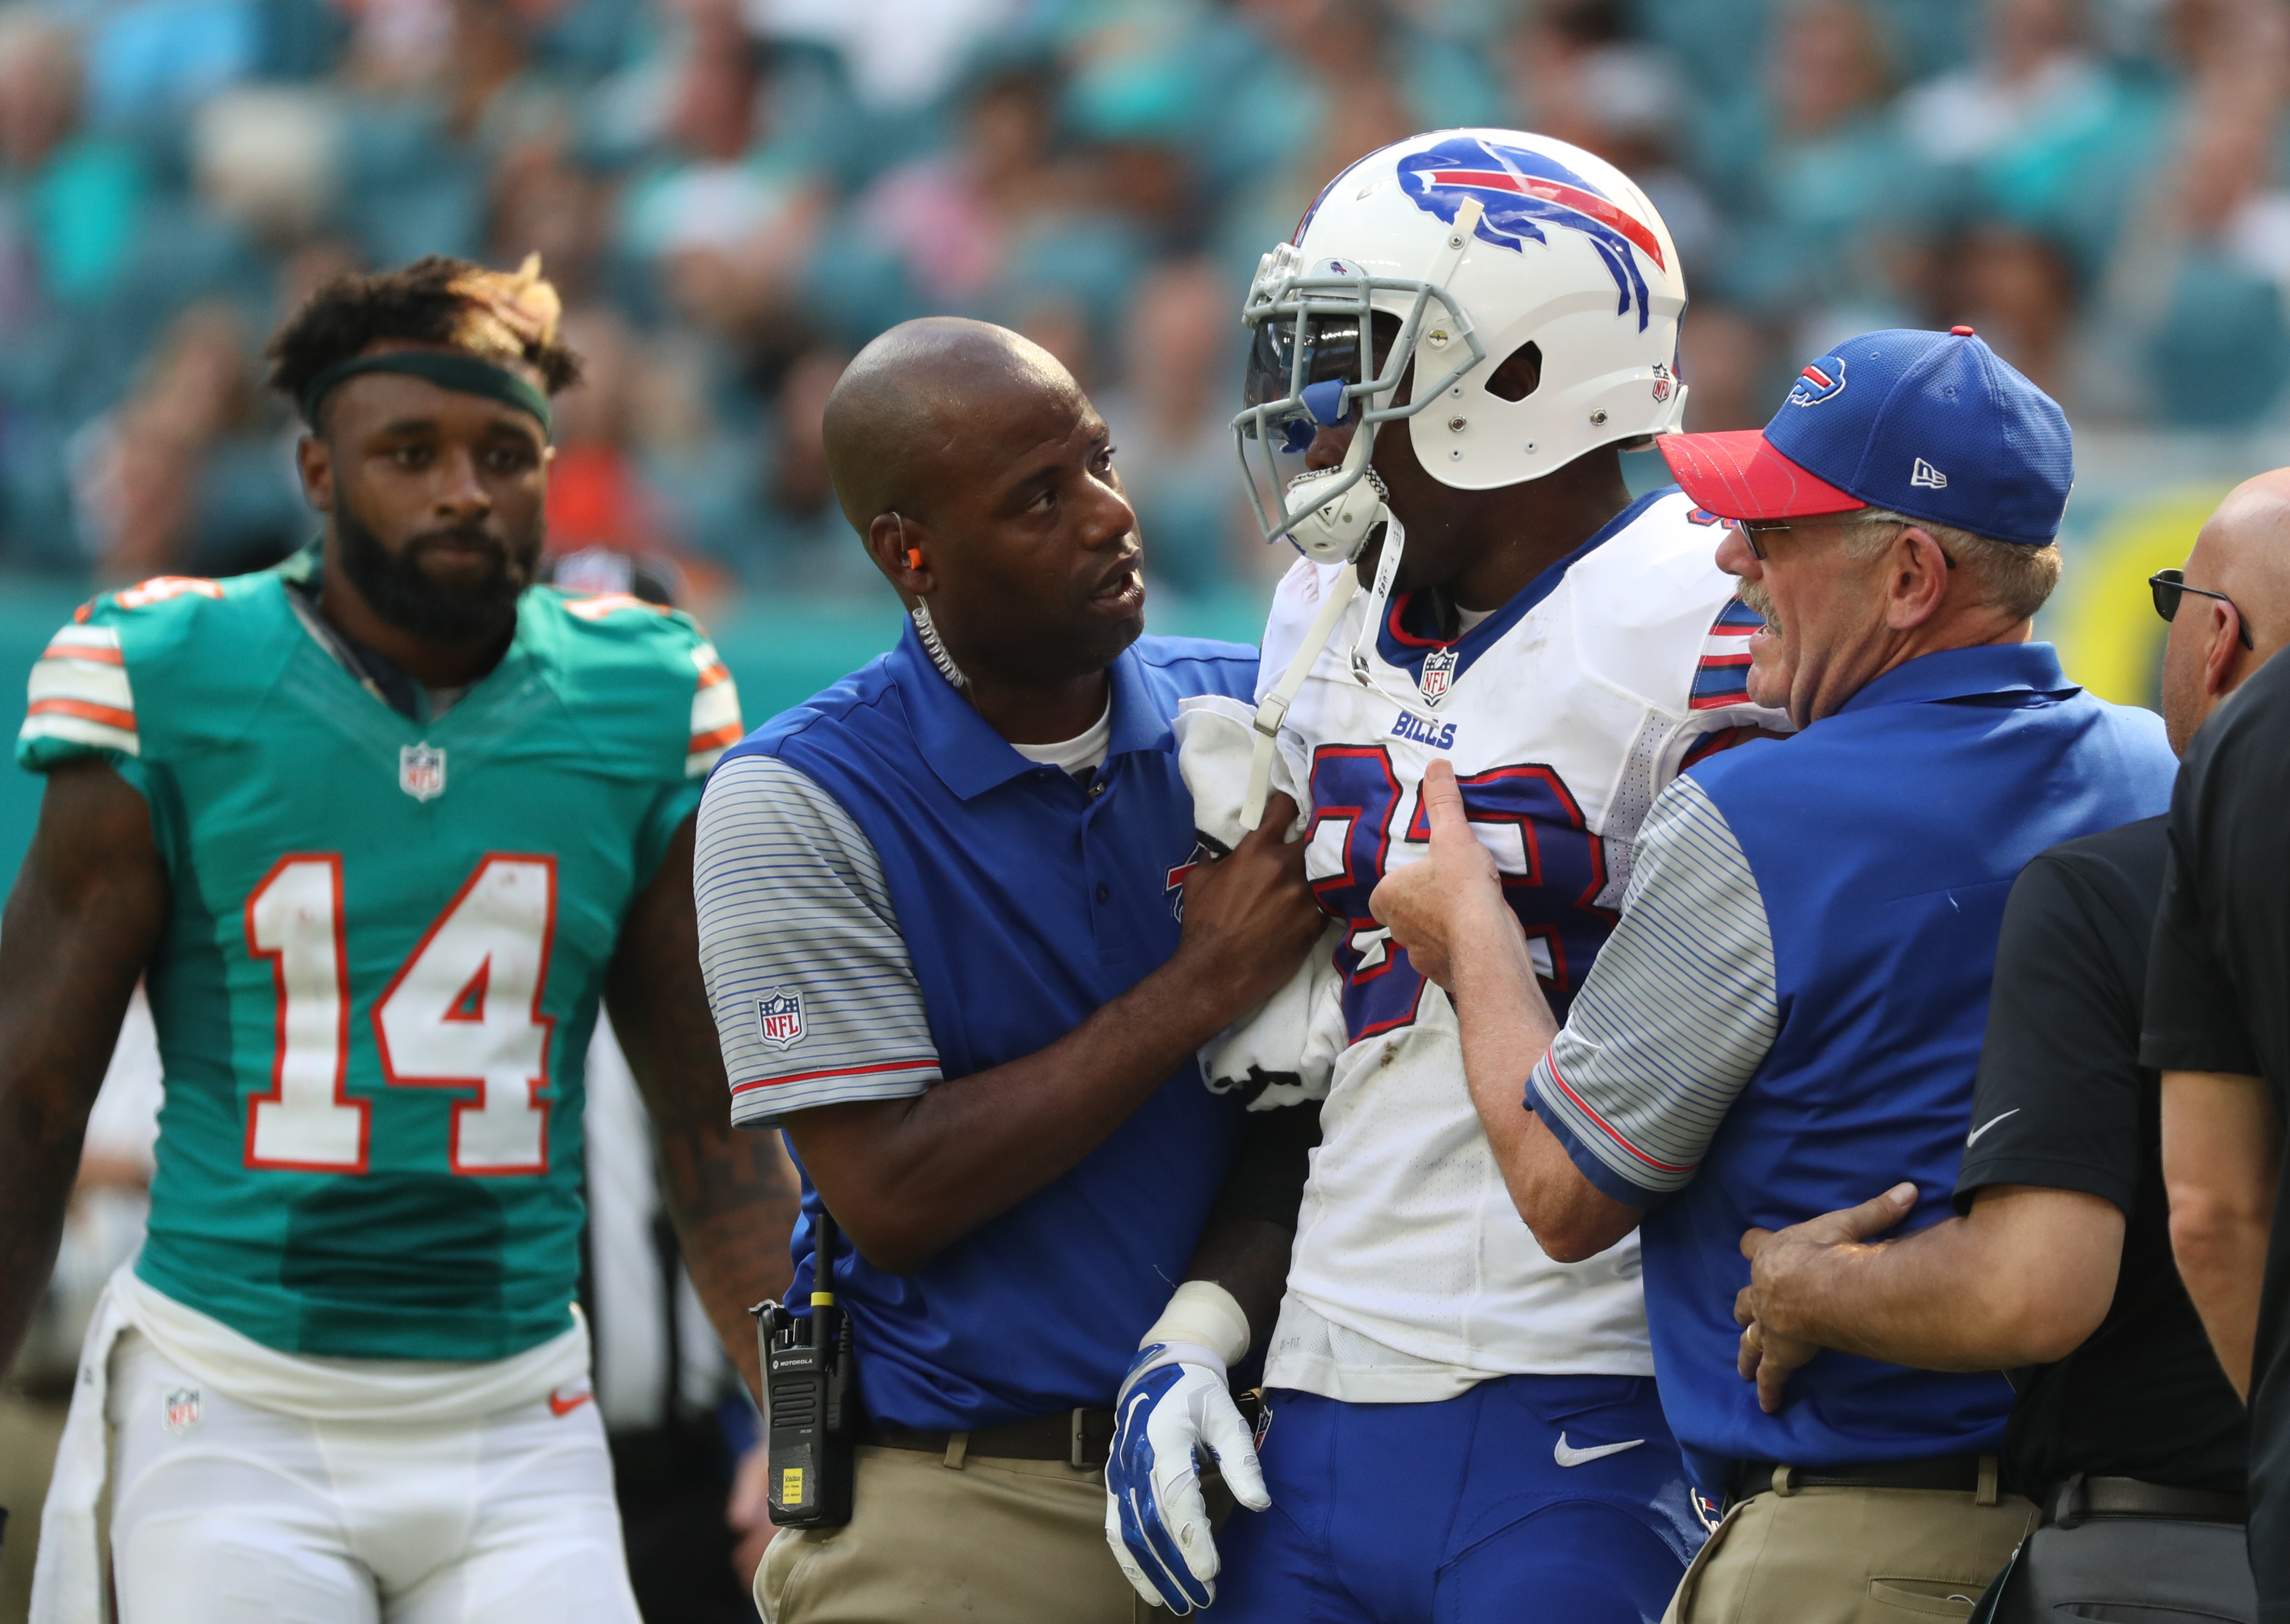 Buffalo Bills strong safety Aaron Williams is helped off the field after absorbing a never-saw-it-coming hit from the Dolphins Jarvis Landry in the Oct. 23 meeting between the teams.  (James P. McCoy/Buffalo News)